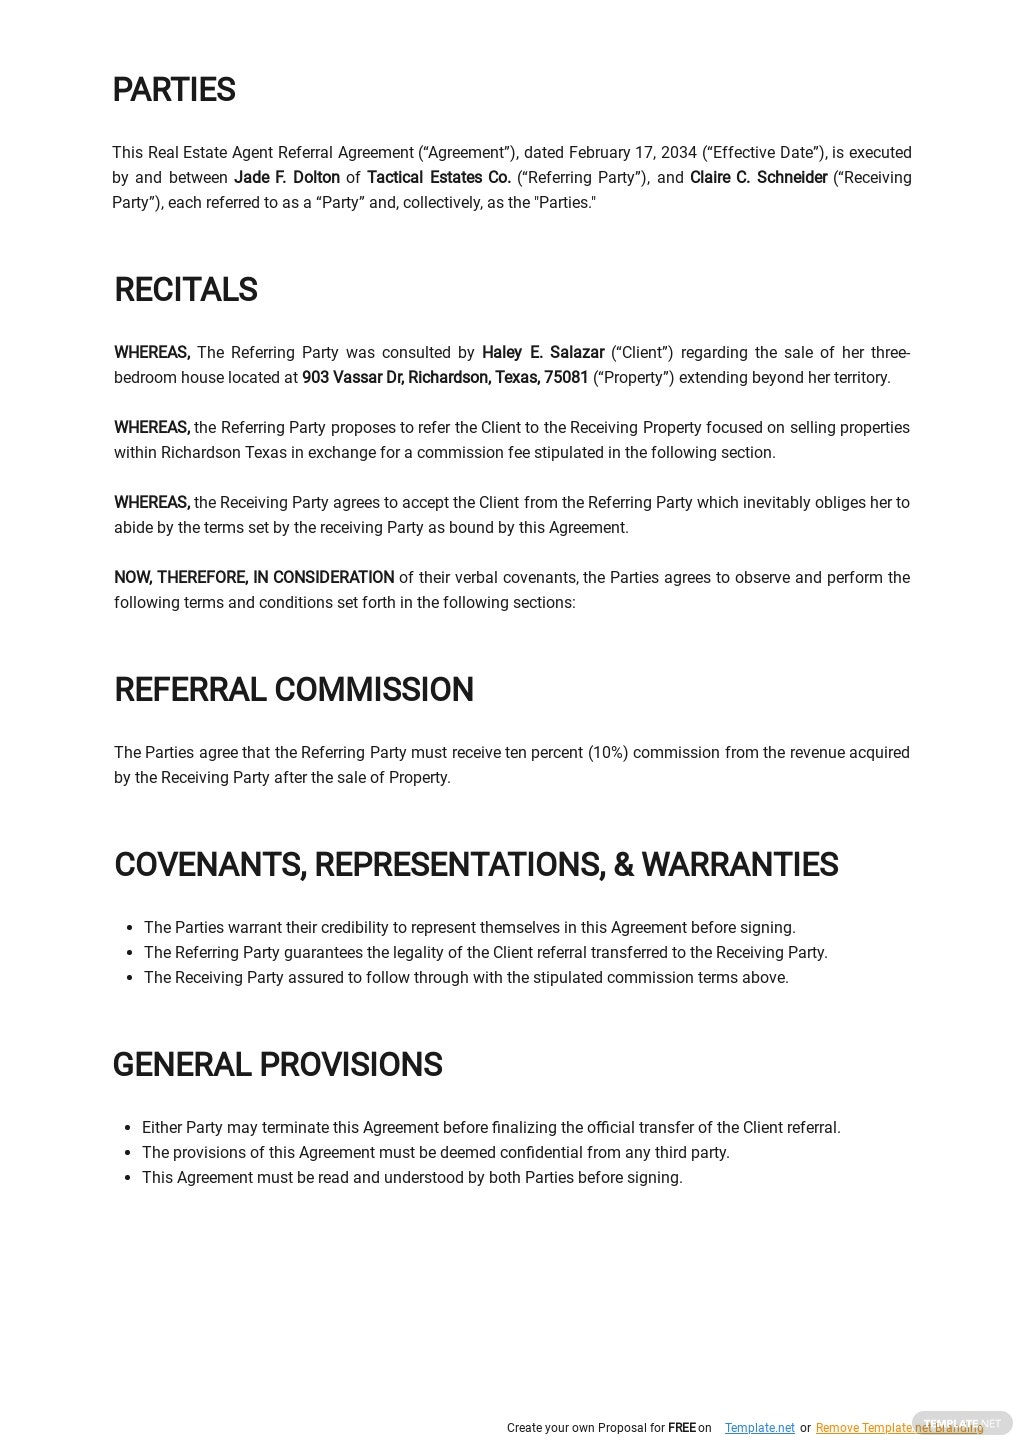 Real Estate Agent Referral Agreement Template 1.jpe